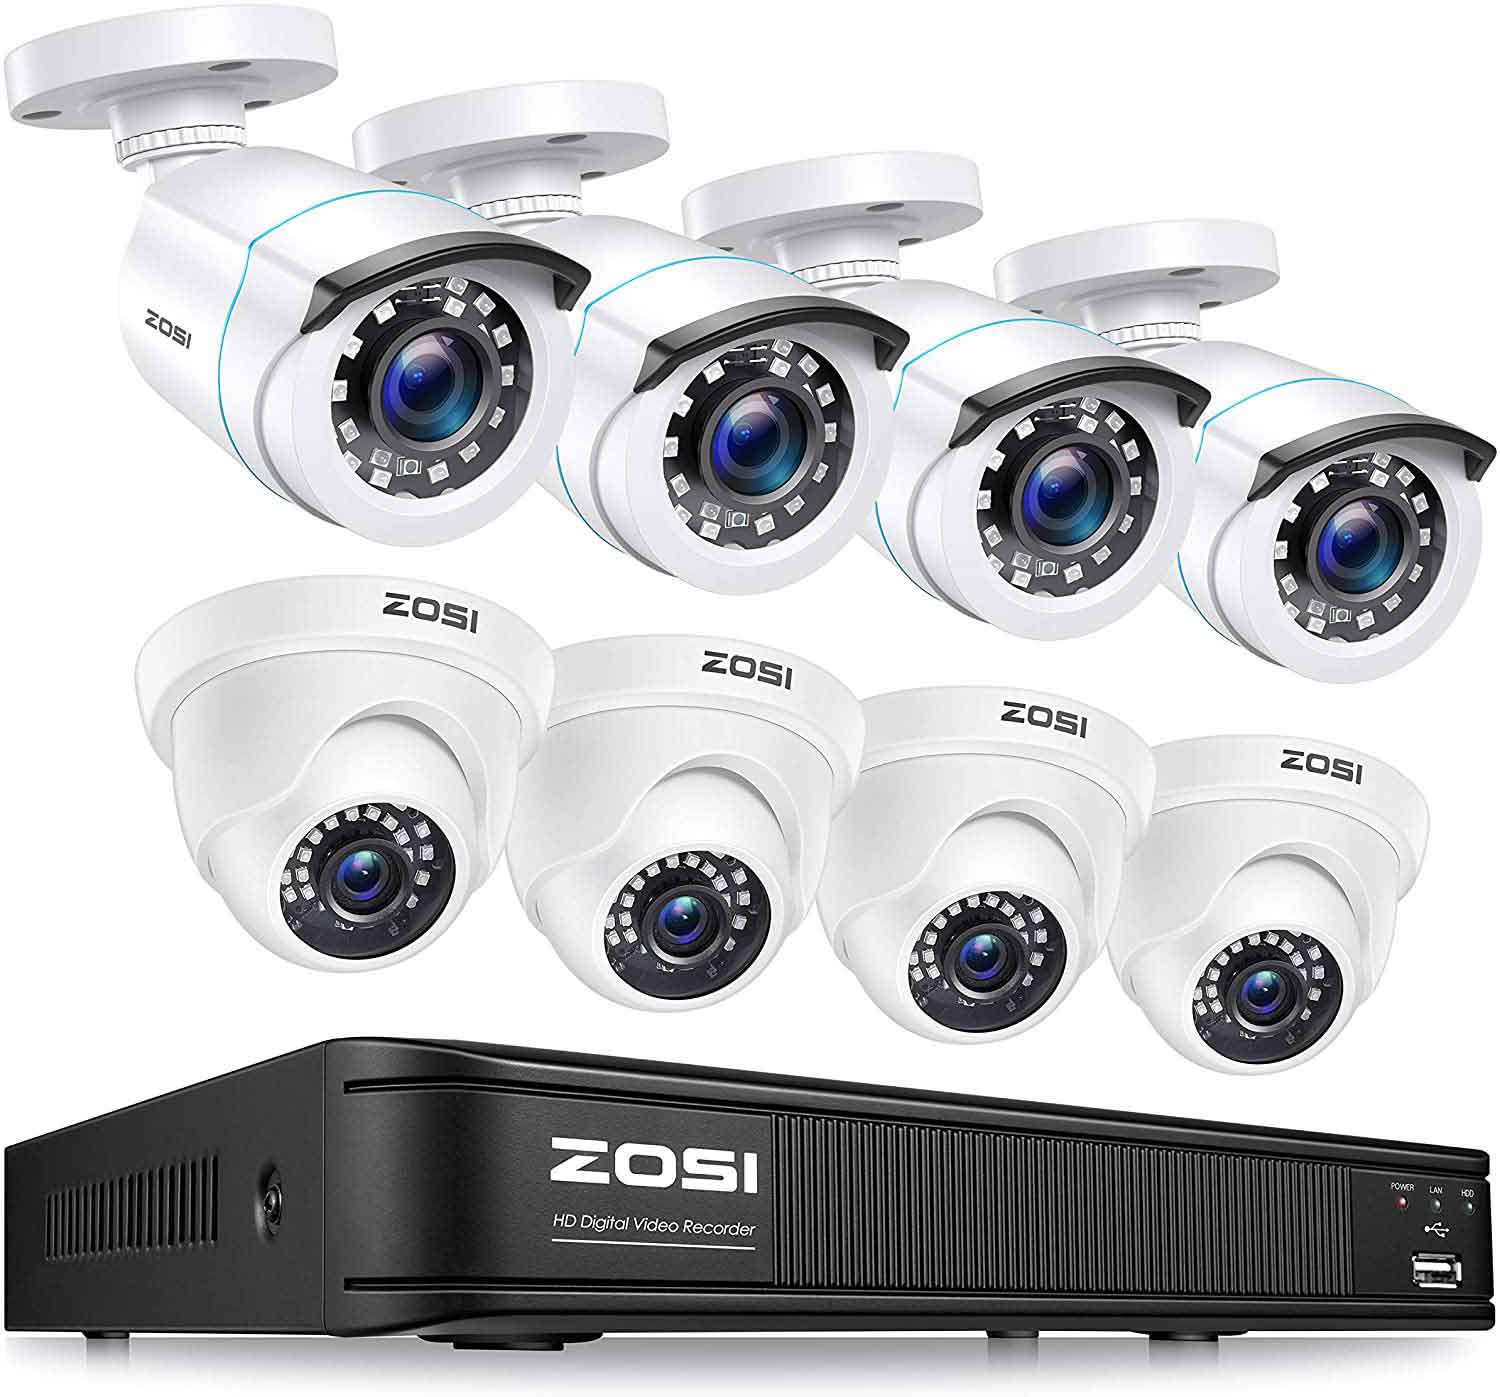 3.ZOSI-H.265+-1080p-Home-Security-Camera-System-Indoor-Outdoor